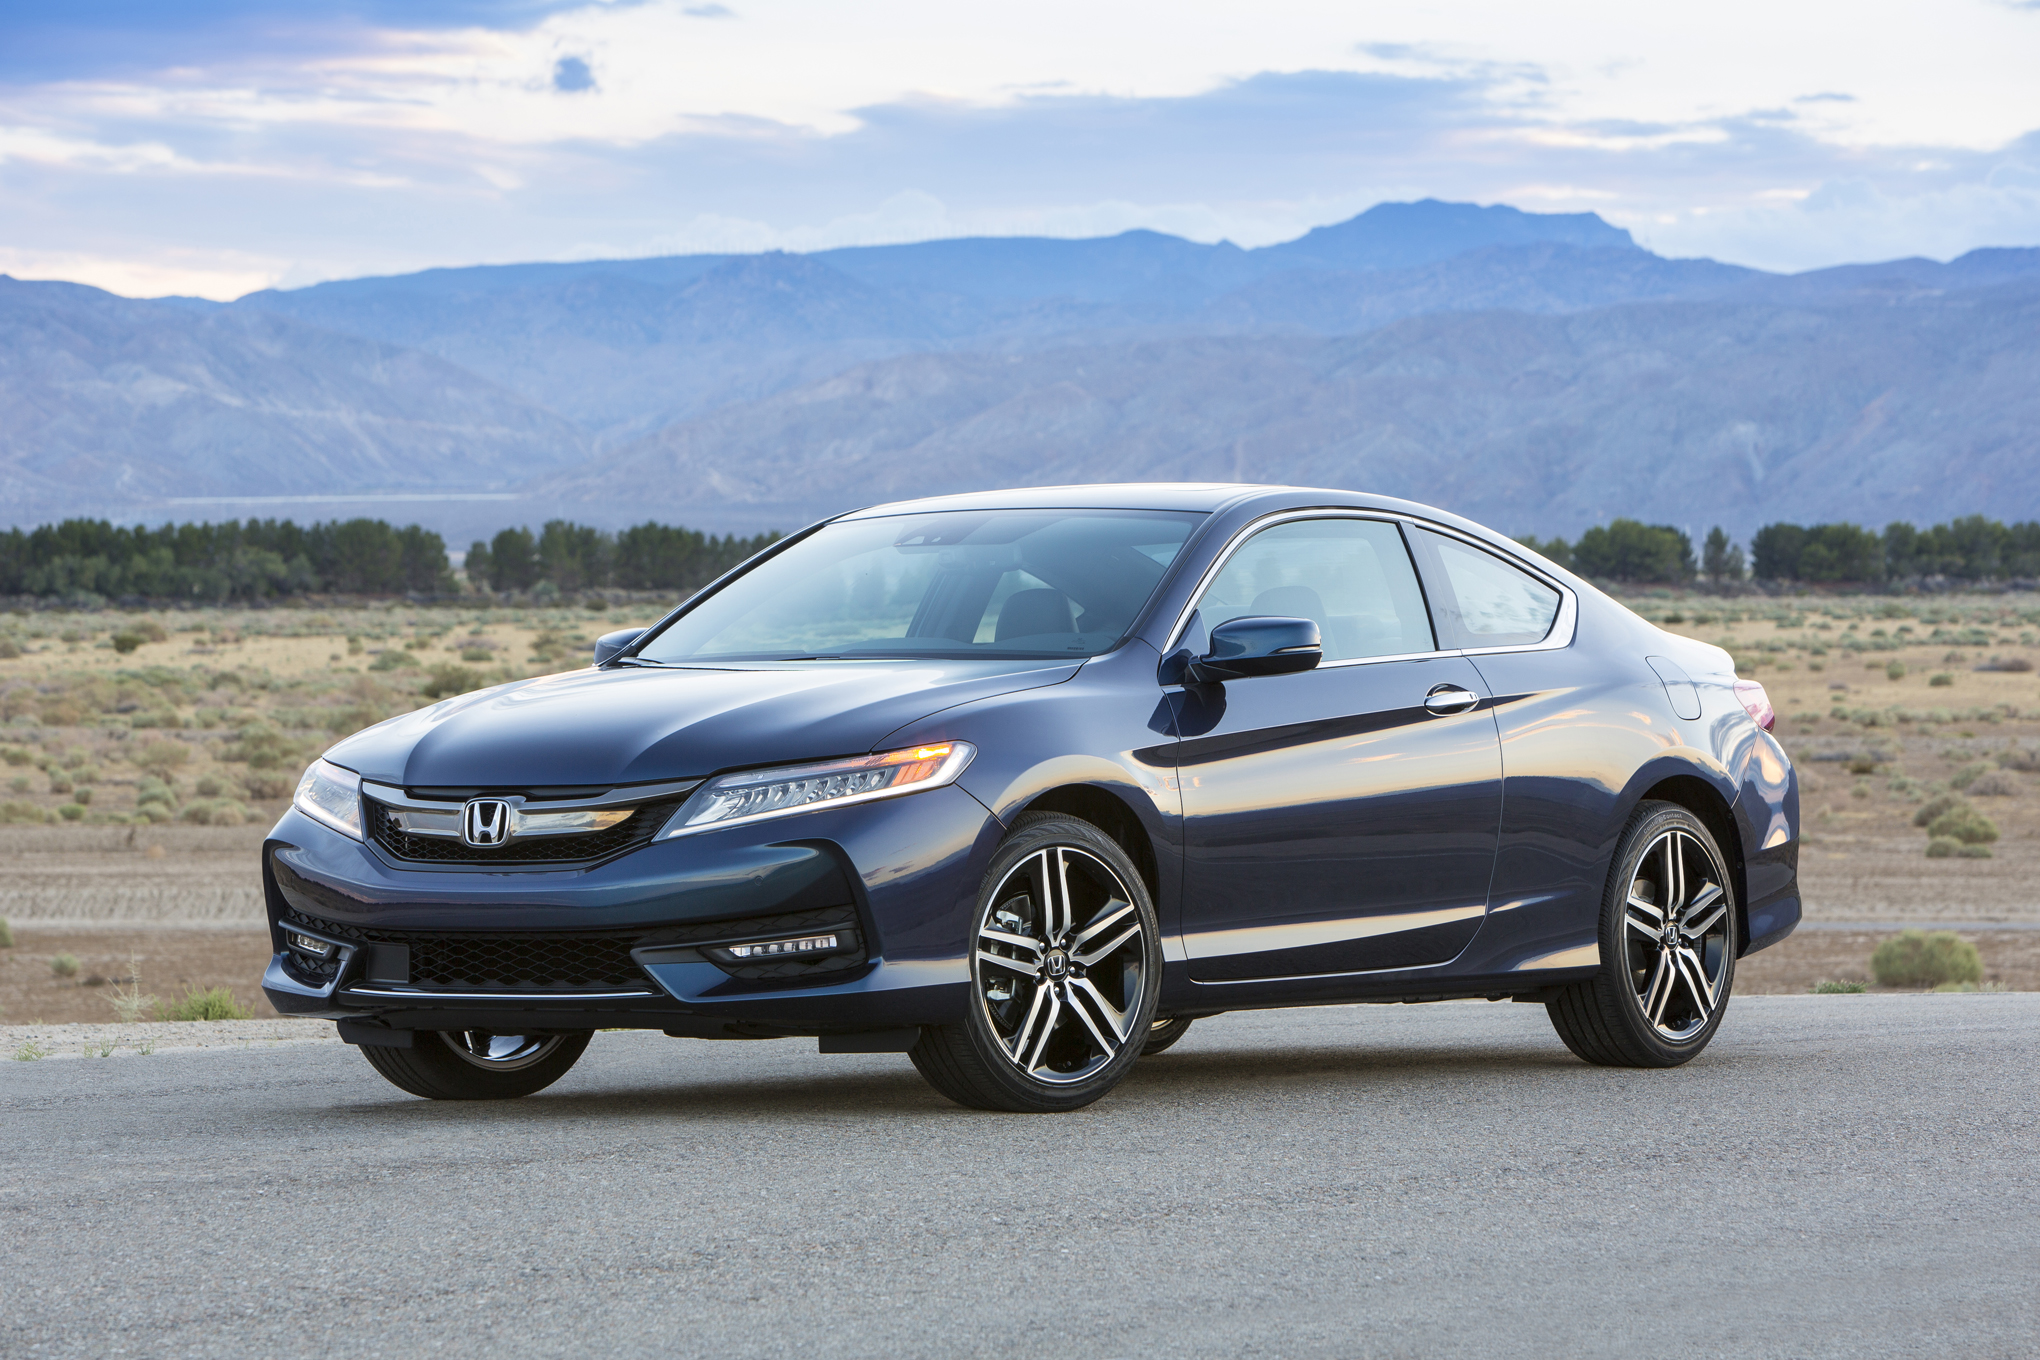 Accord coupe v6 0-60